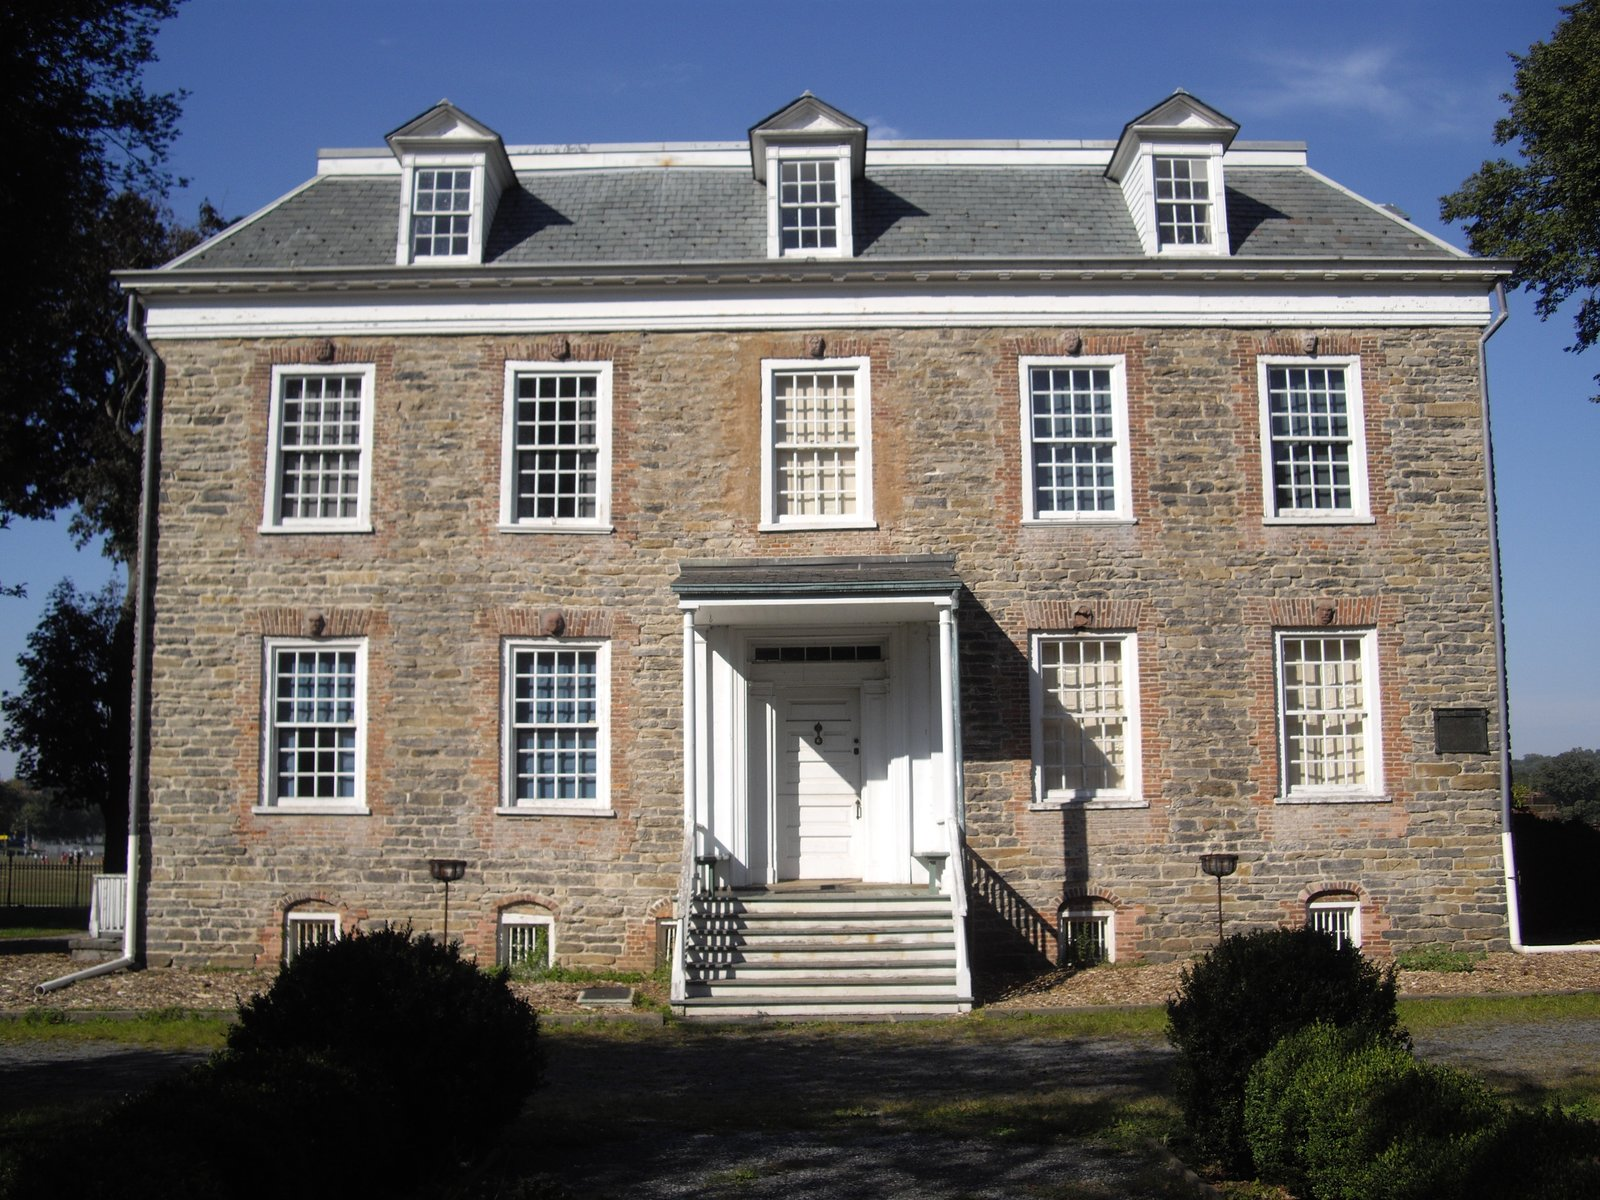 October 16 Building of the Day: Van Cortlandt House Museum  Built by Frederick Van Cortlandt   Photo credit: NSCD-NY, Van Cortlandt House Museum    2013 Buildings of the Day by Archtober